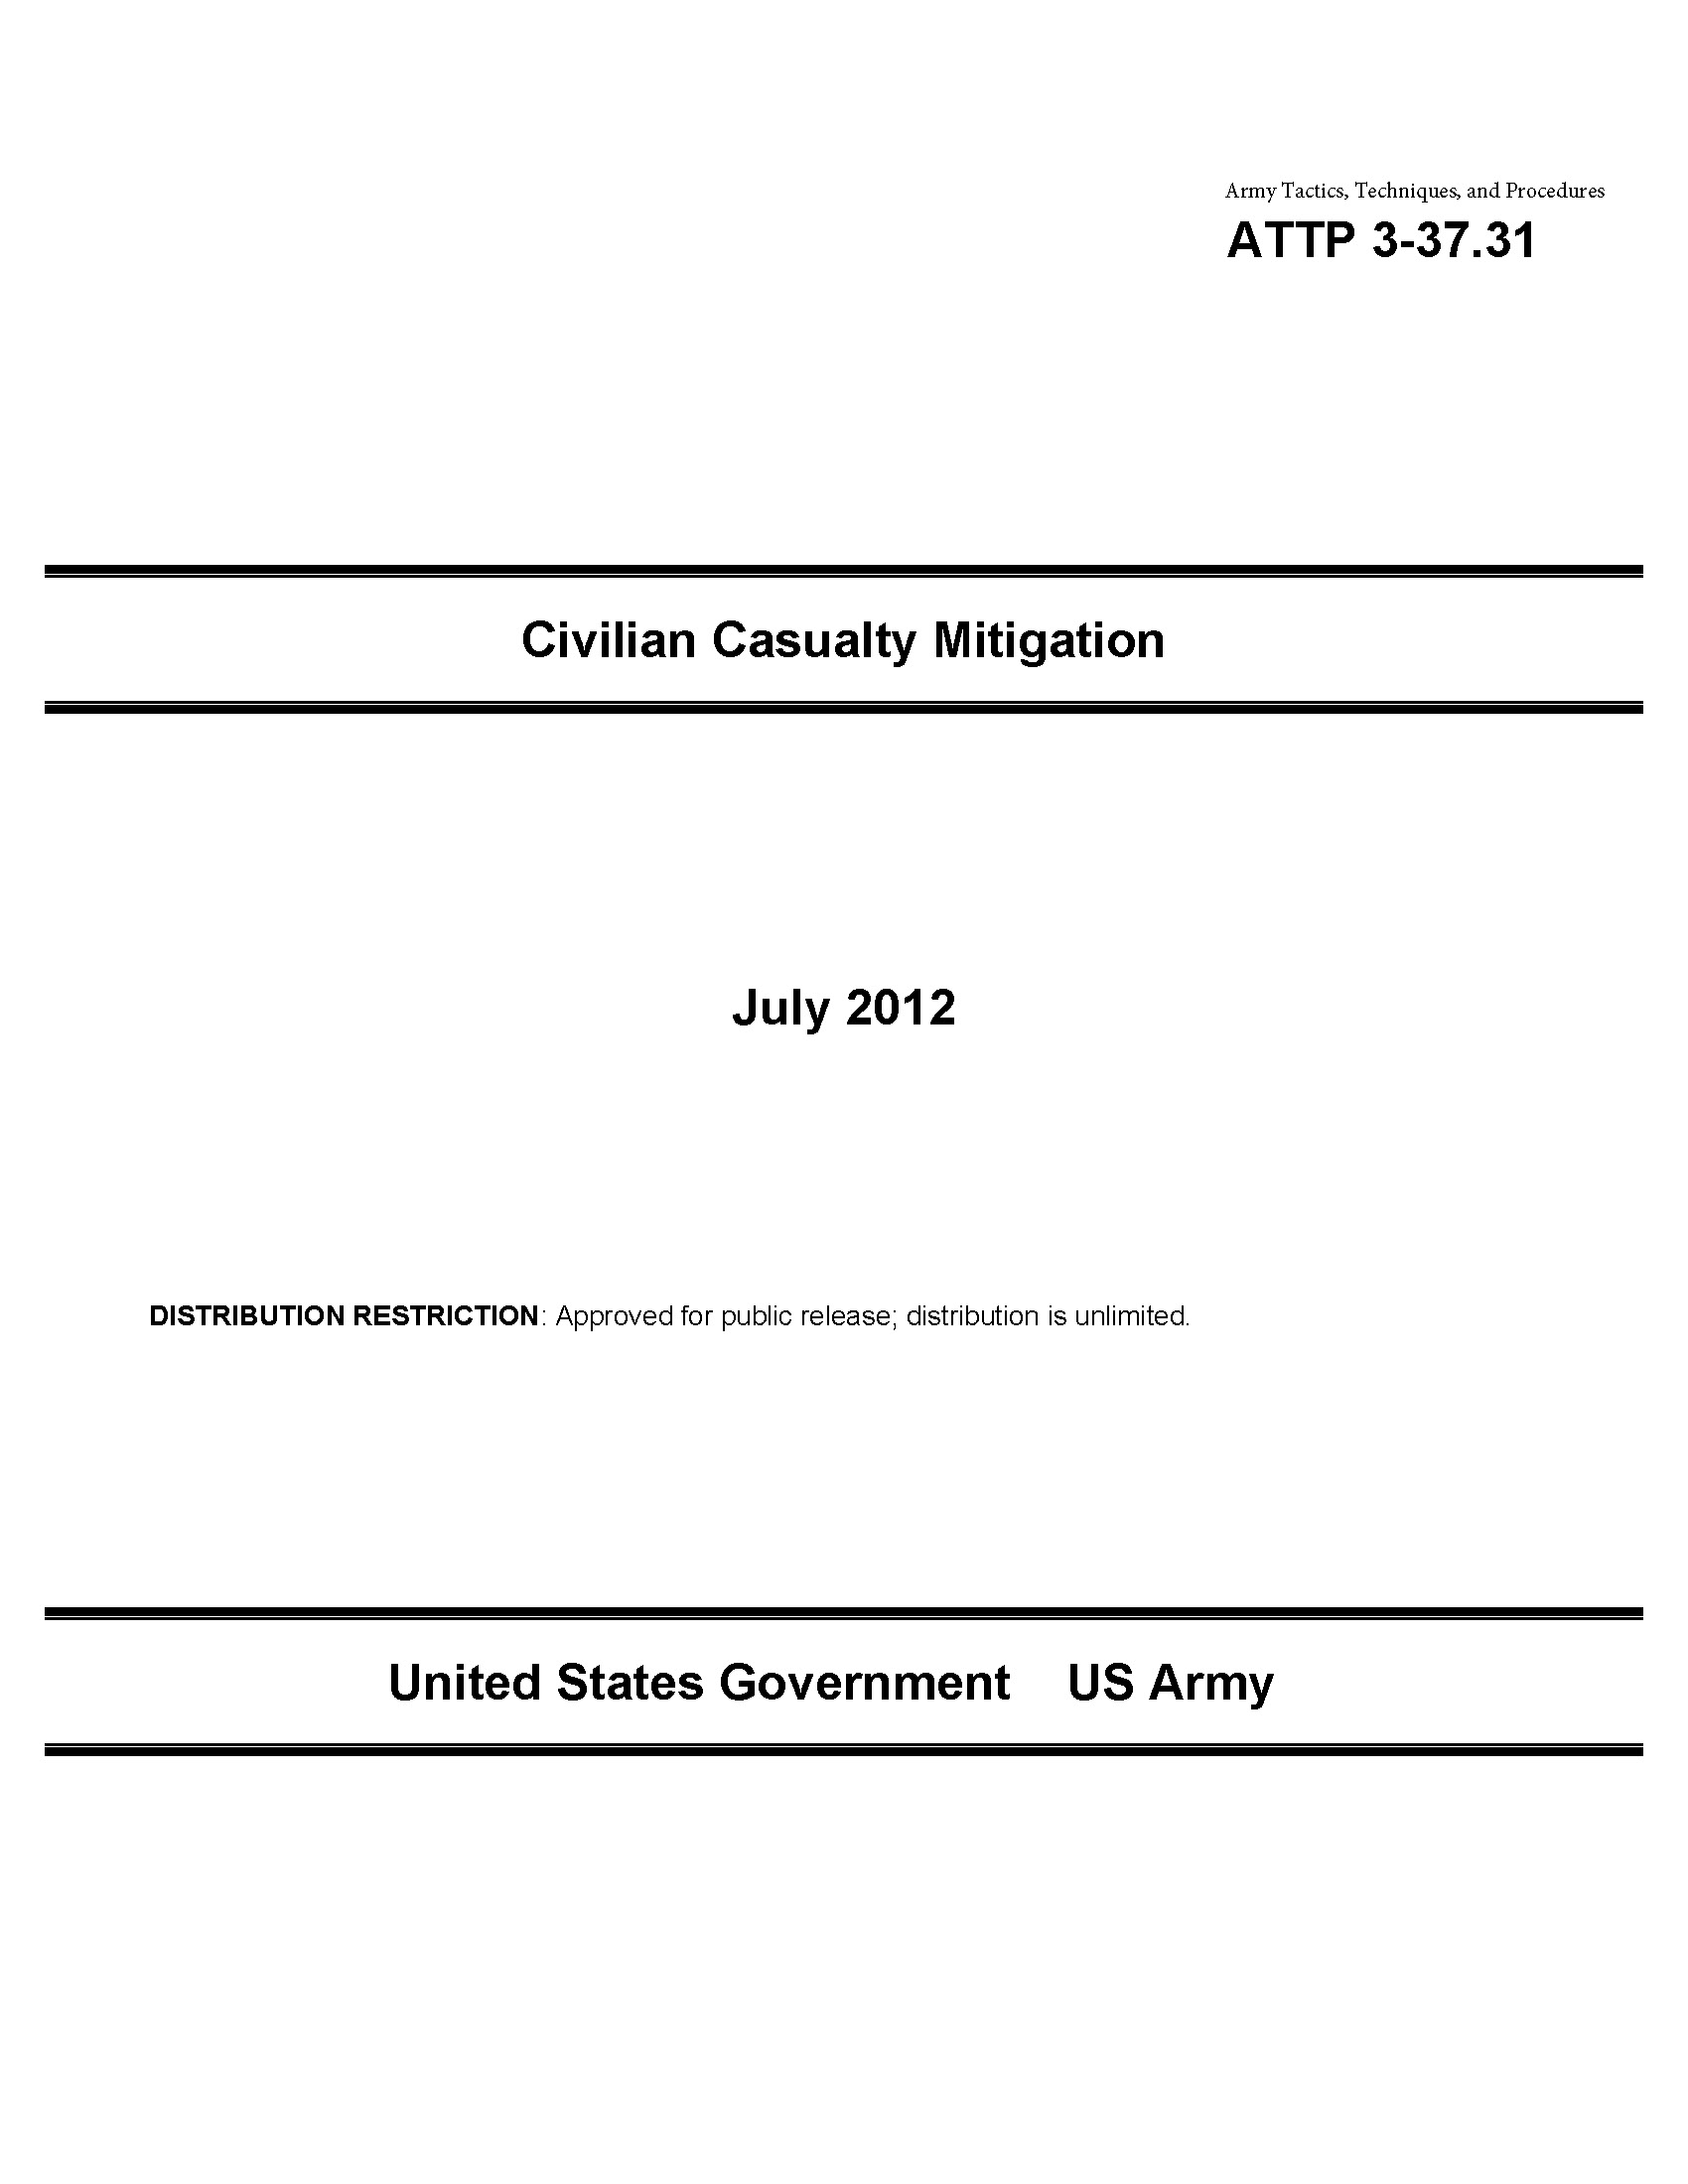 Army Tactics, Techniques, and Procedures ATTP 3-37.31 Civilian Casualty Mitigation July 2012